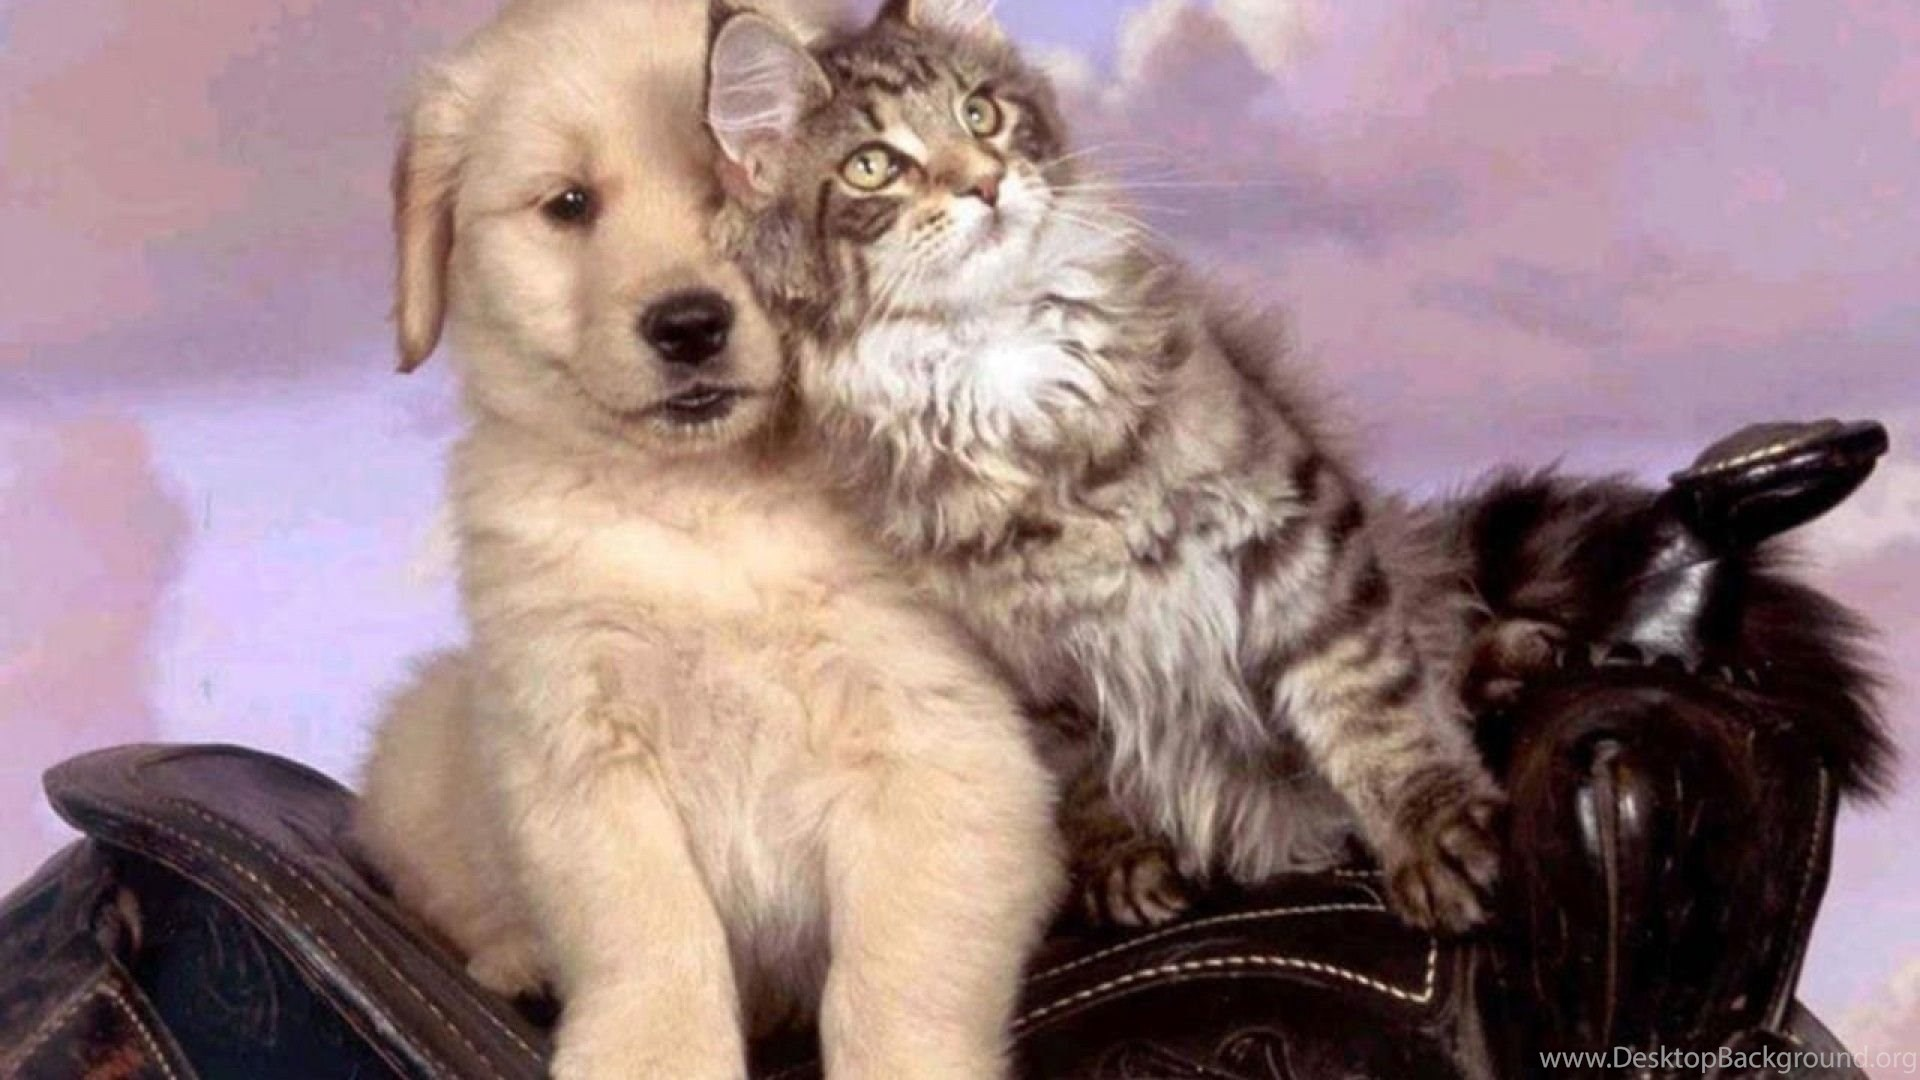 Cats: Pet Love Animal Cat Puppy Kitten Dog Cats Animals Dogs ...